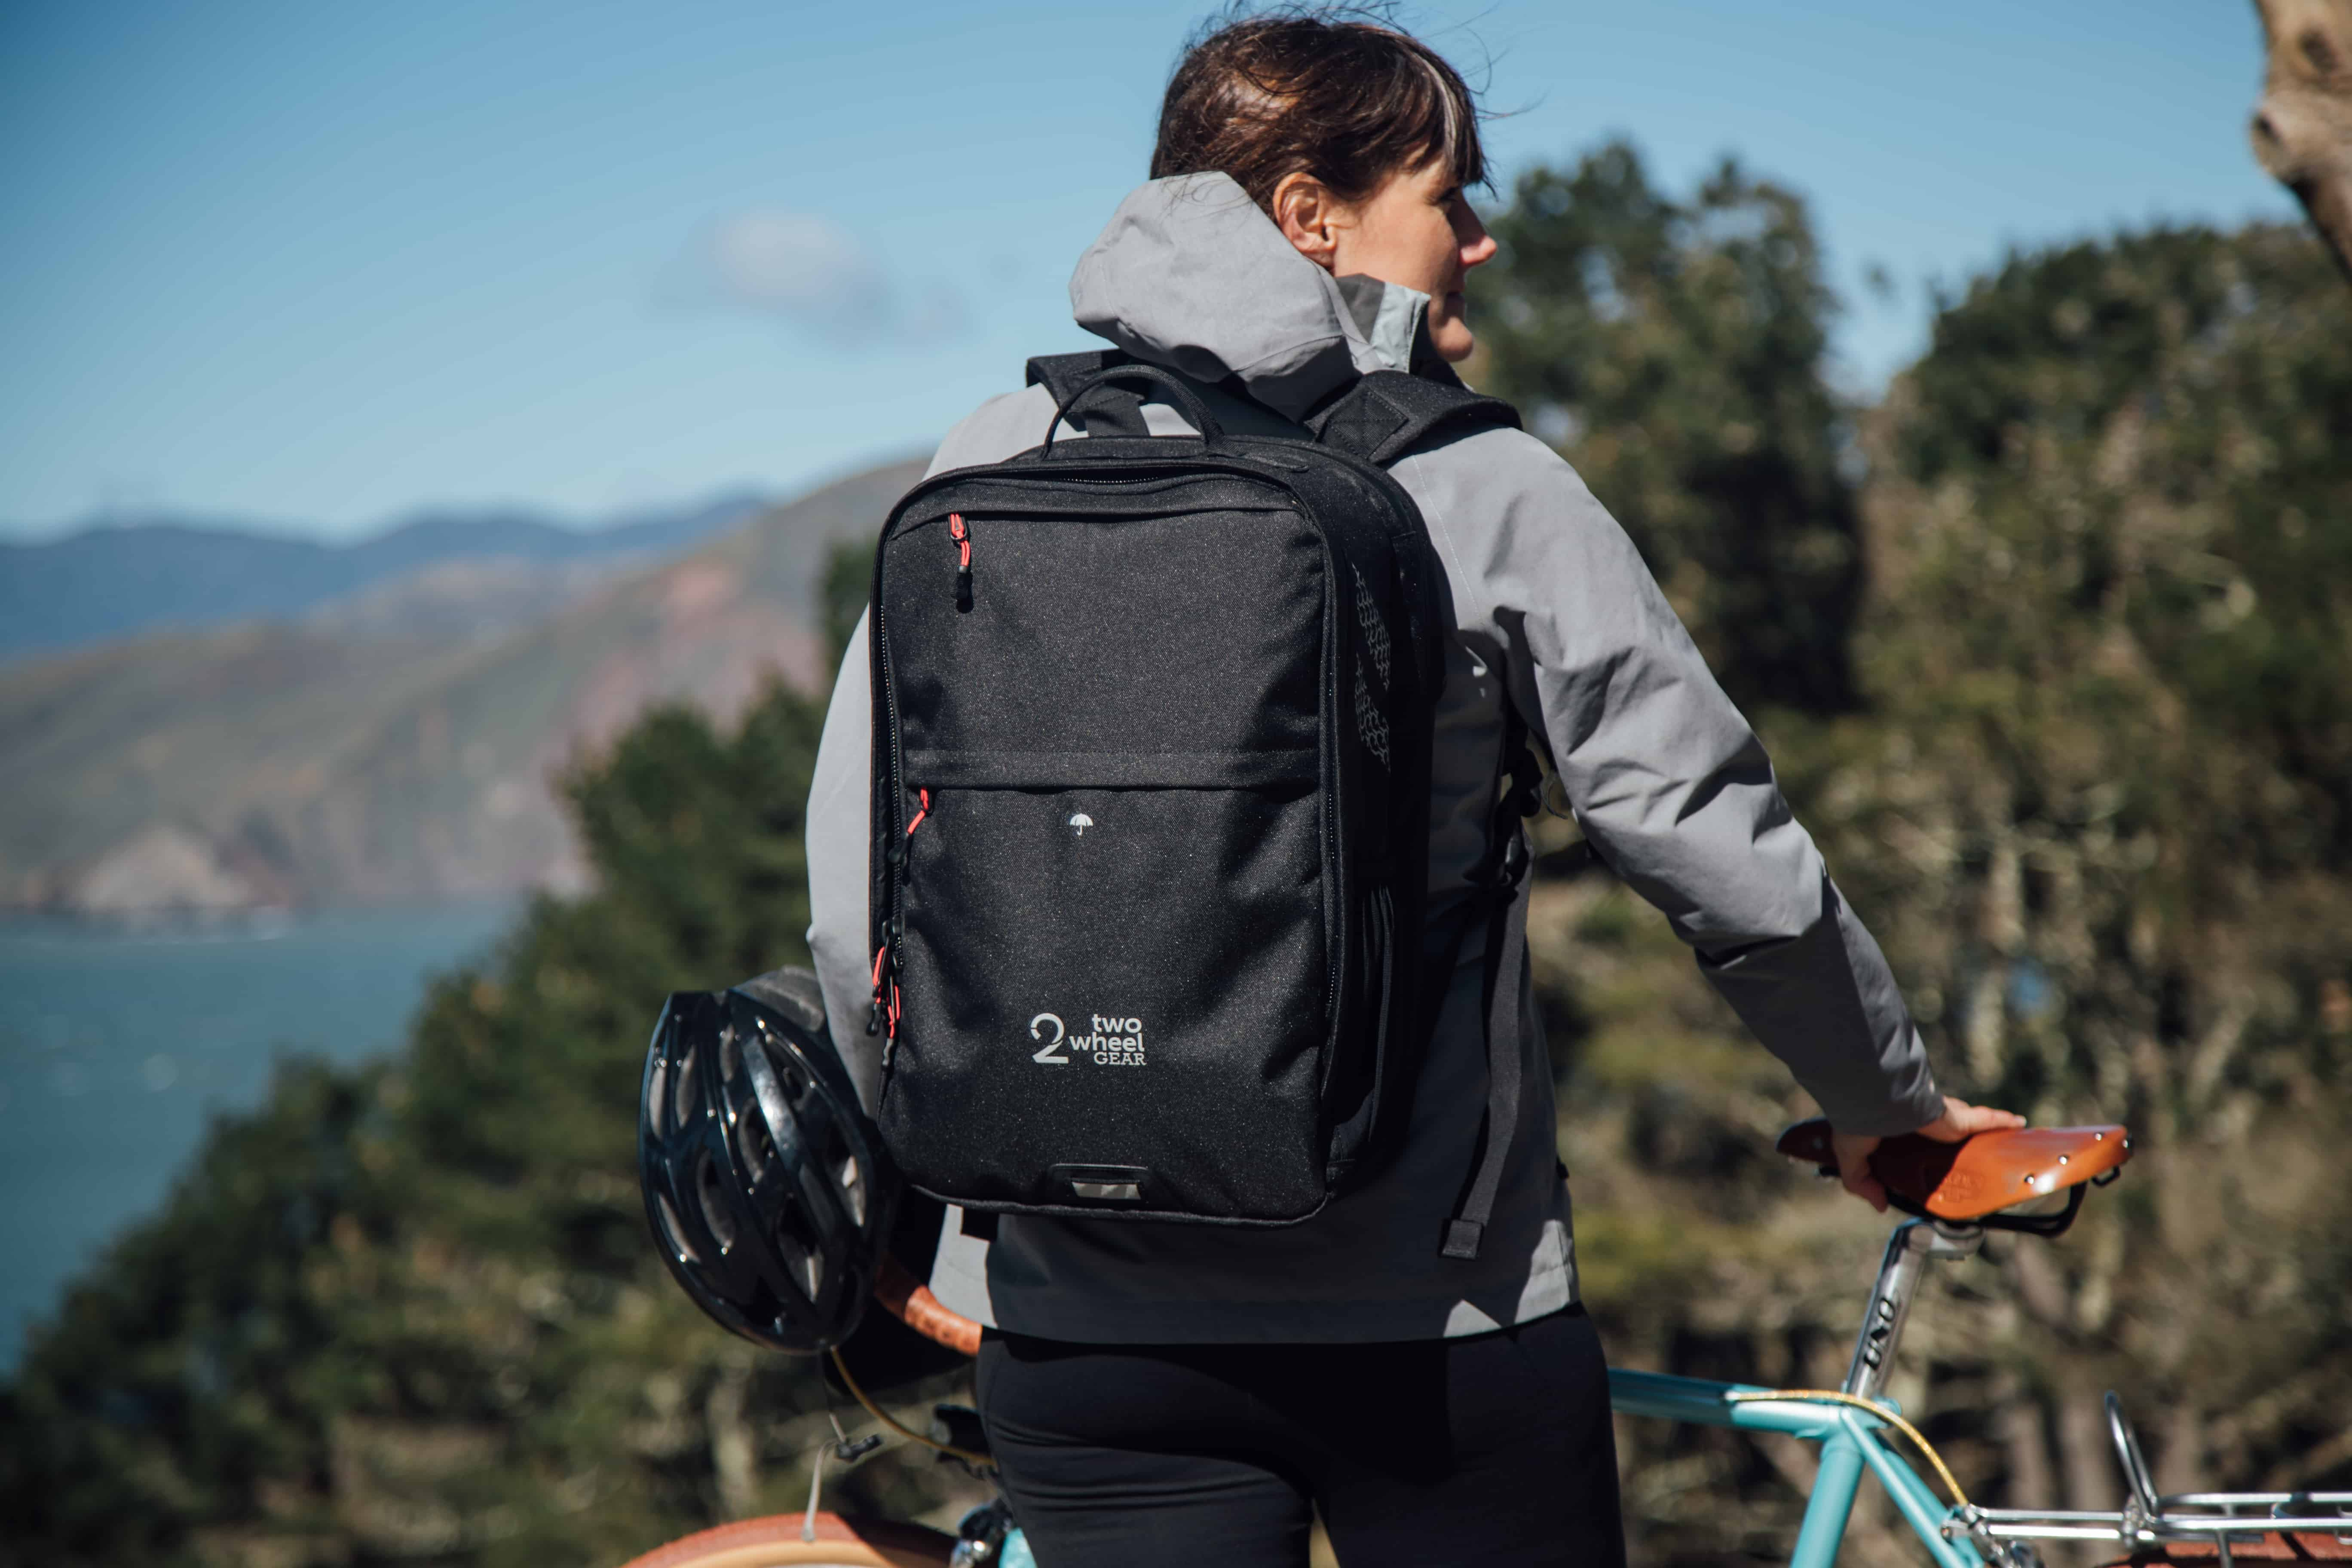 Two Wheel Gear - Pannier Backpack PLUS+ on female commuter